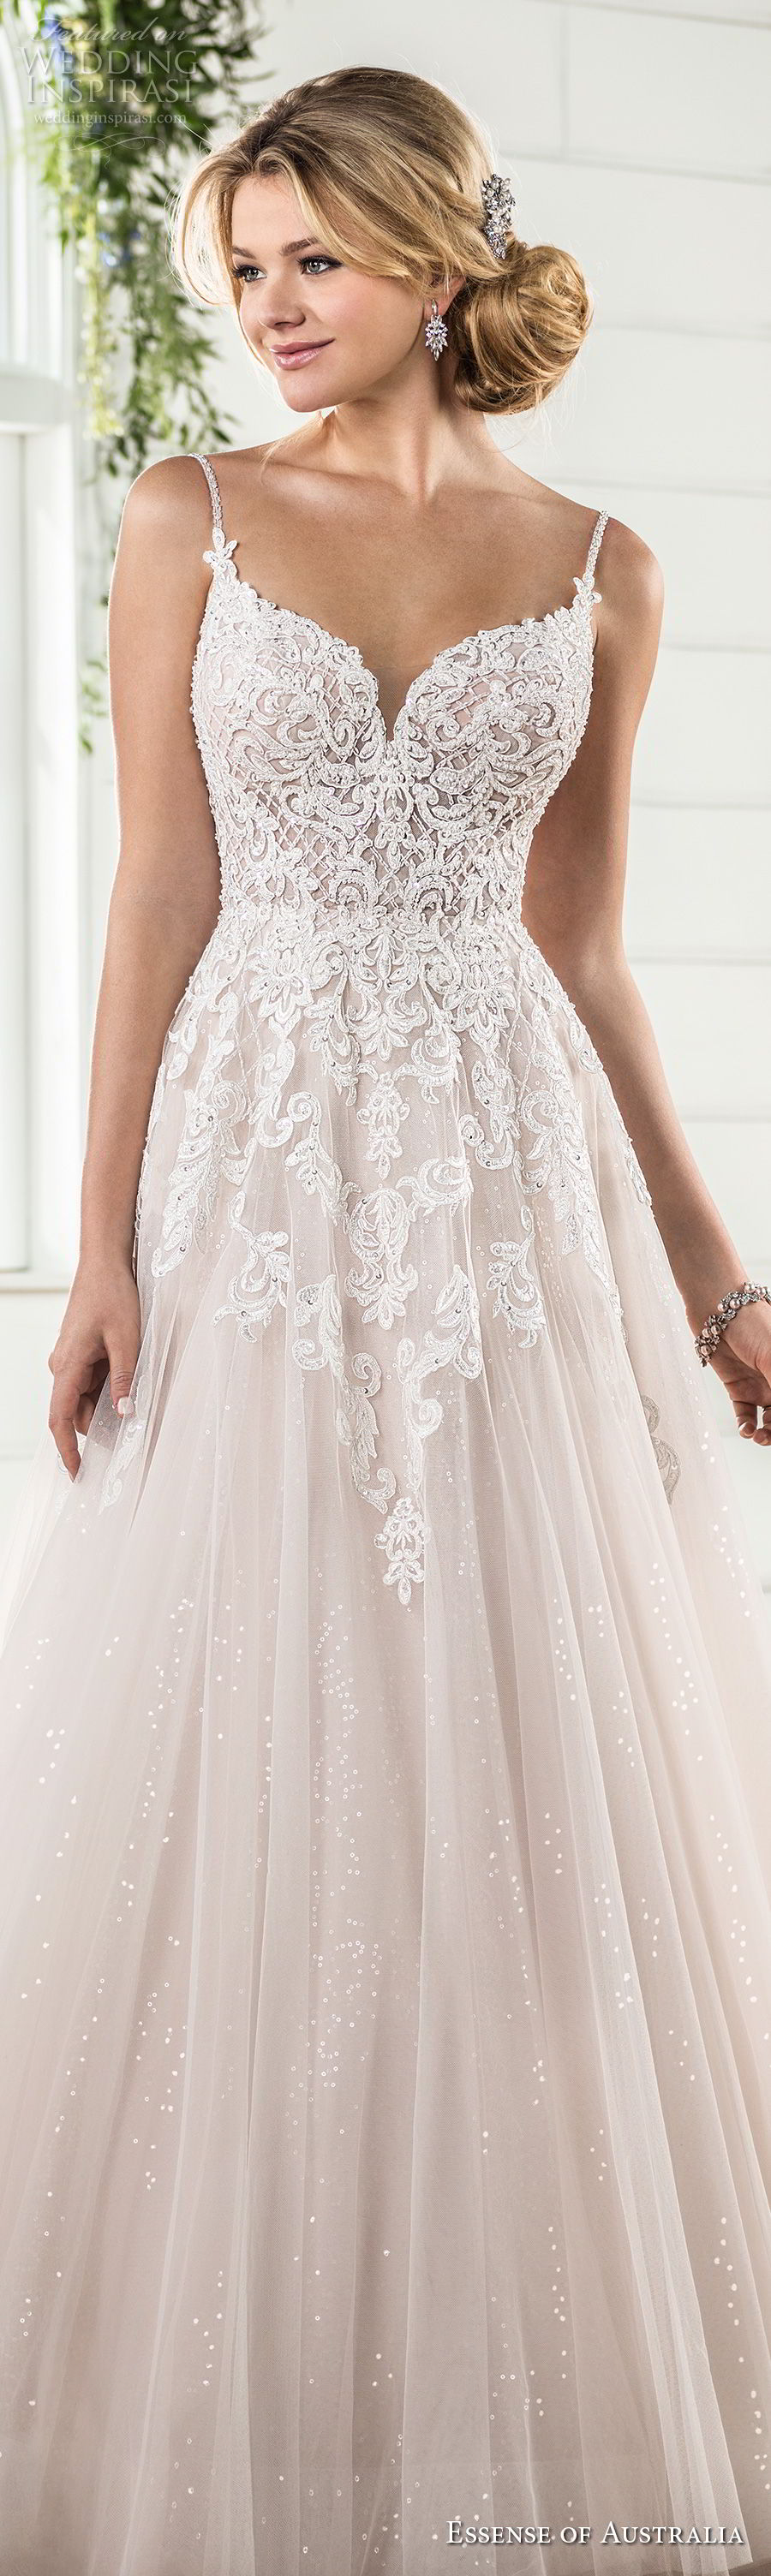 essense australia fall 2017 bridal spaghetti strap sweetheart neckline heavily embellished bodice romantic blush color a line wedding dress open scoop back sweep train (63) lv